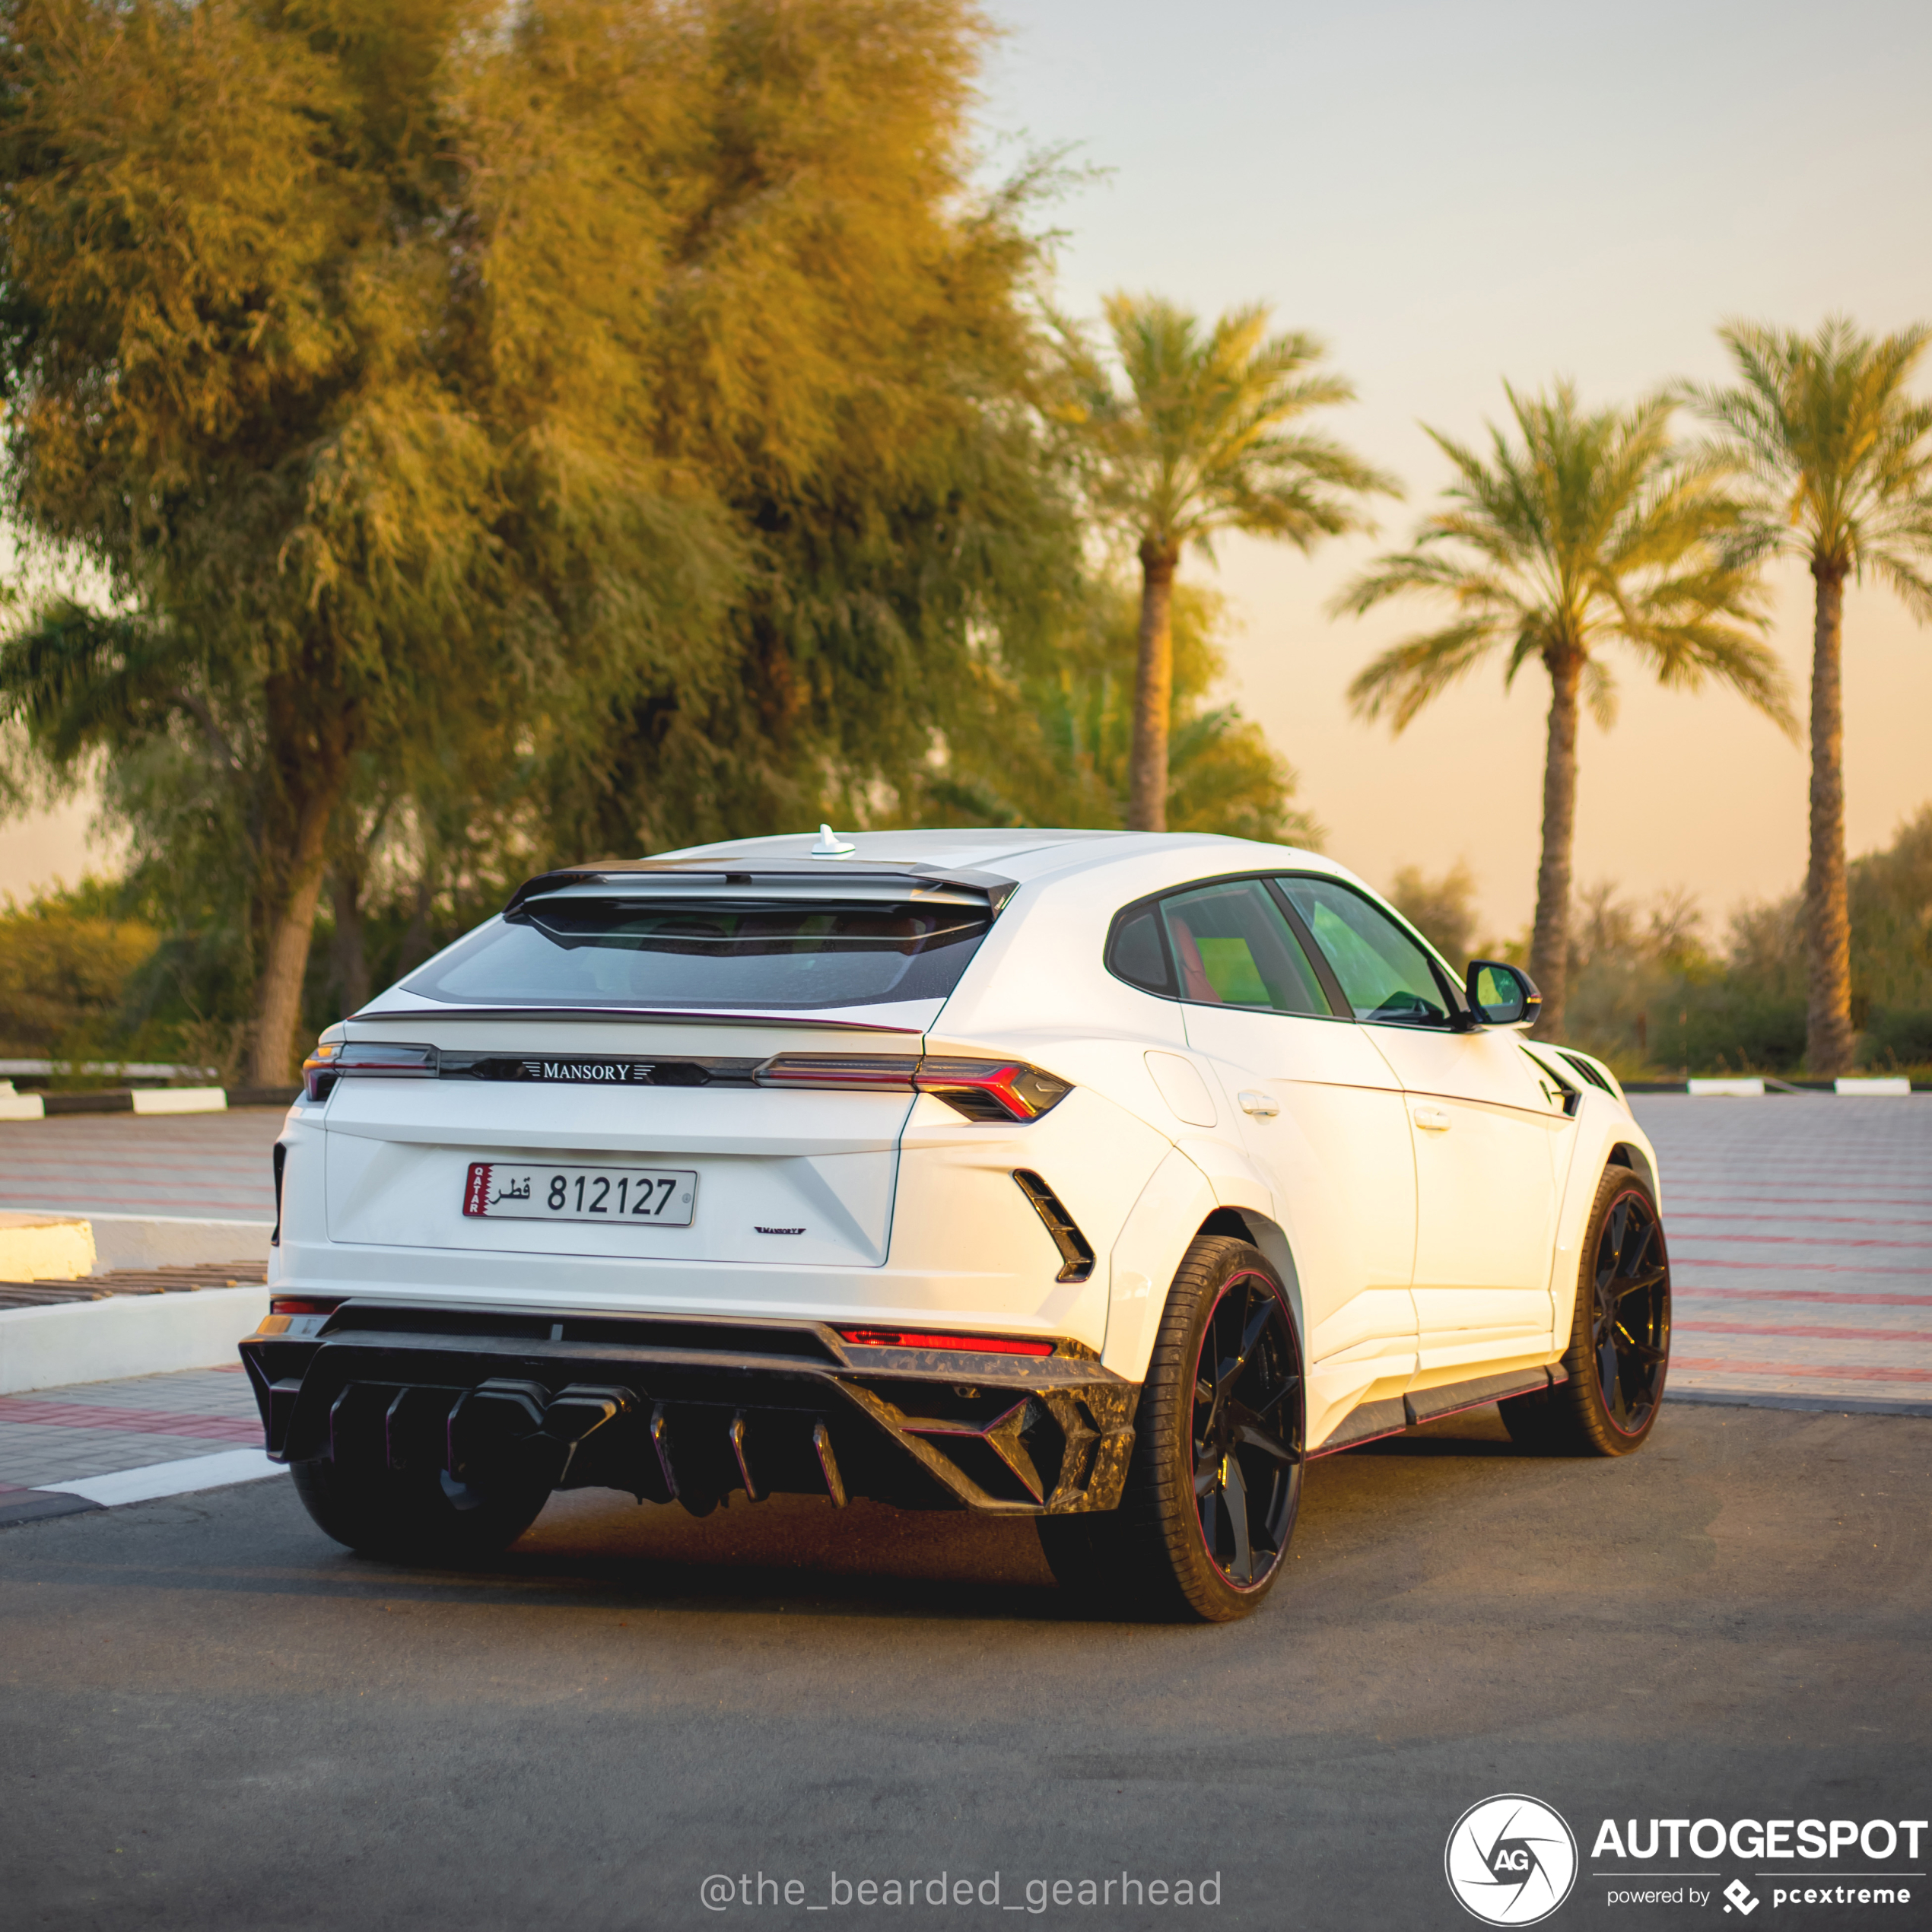 Lamborghini Urus Mansory Venatus shows up in Qatar